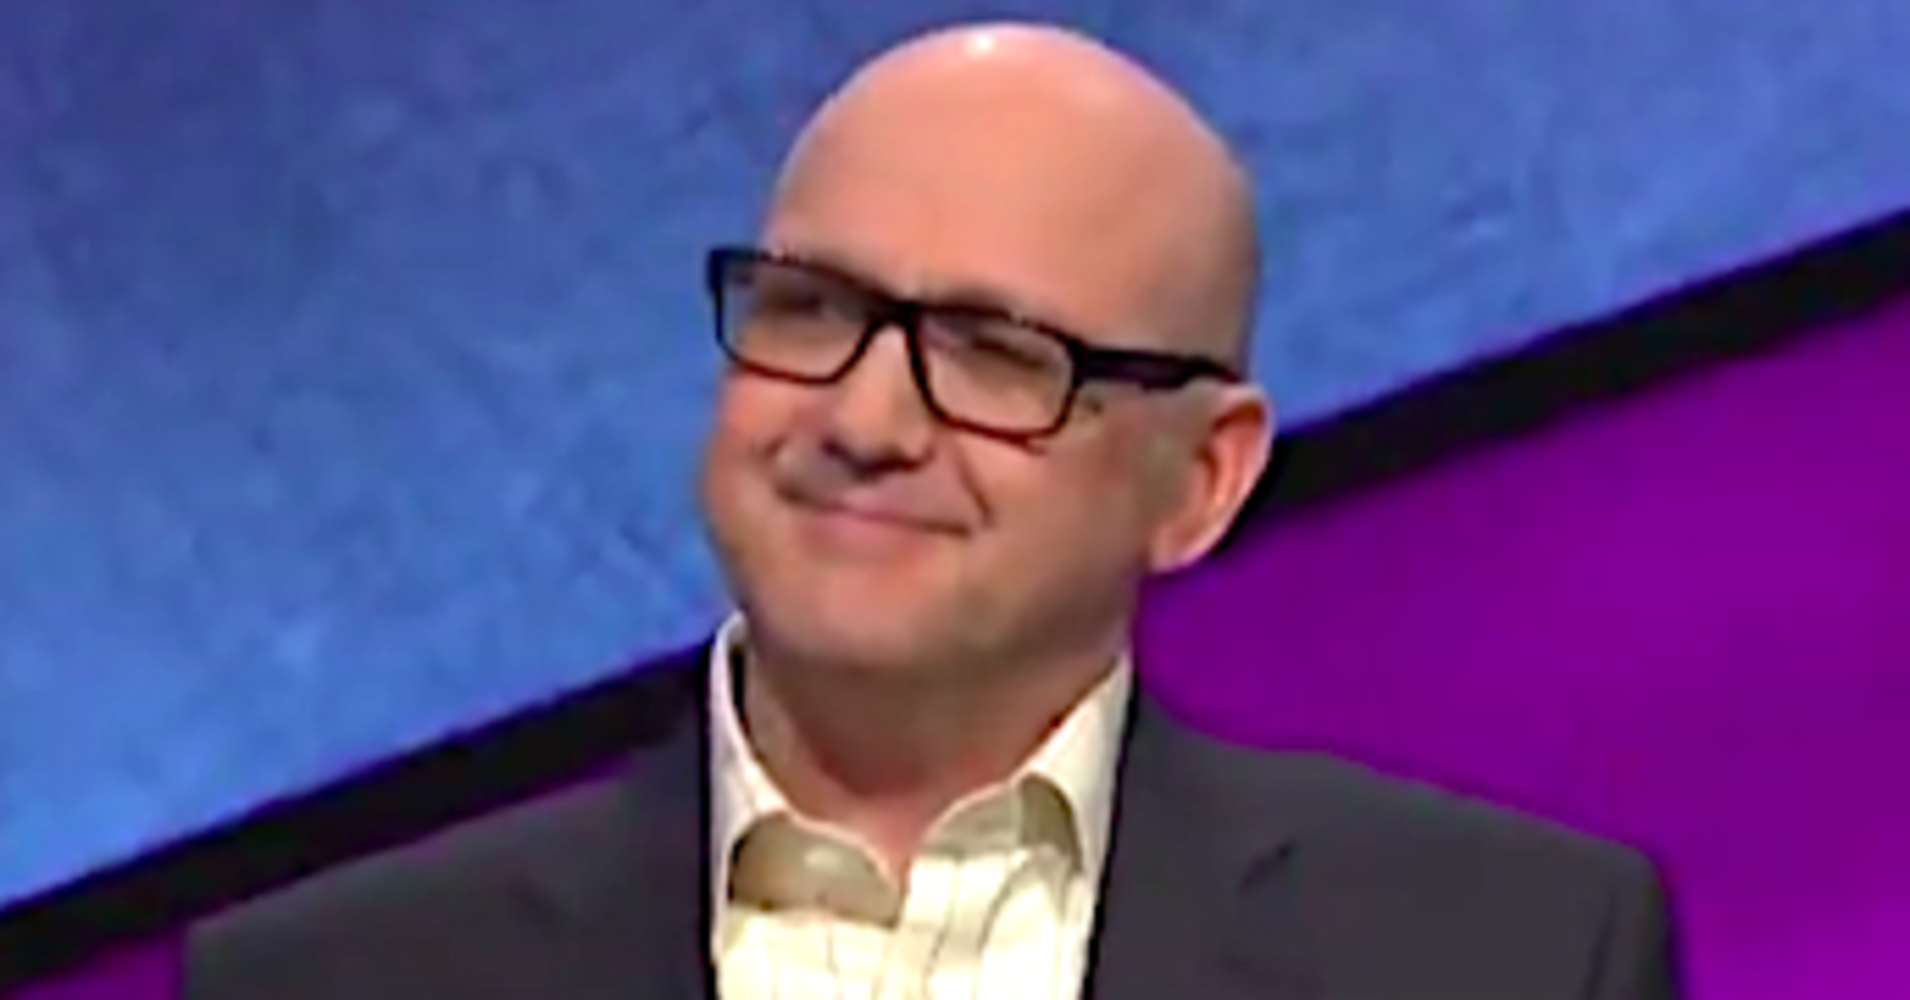 'Jeopardy!' Contestant Hides His Famous Past, But Viewers Catch On